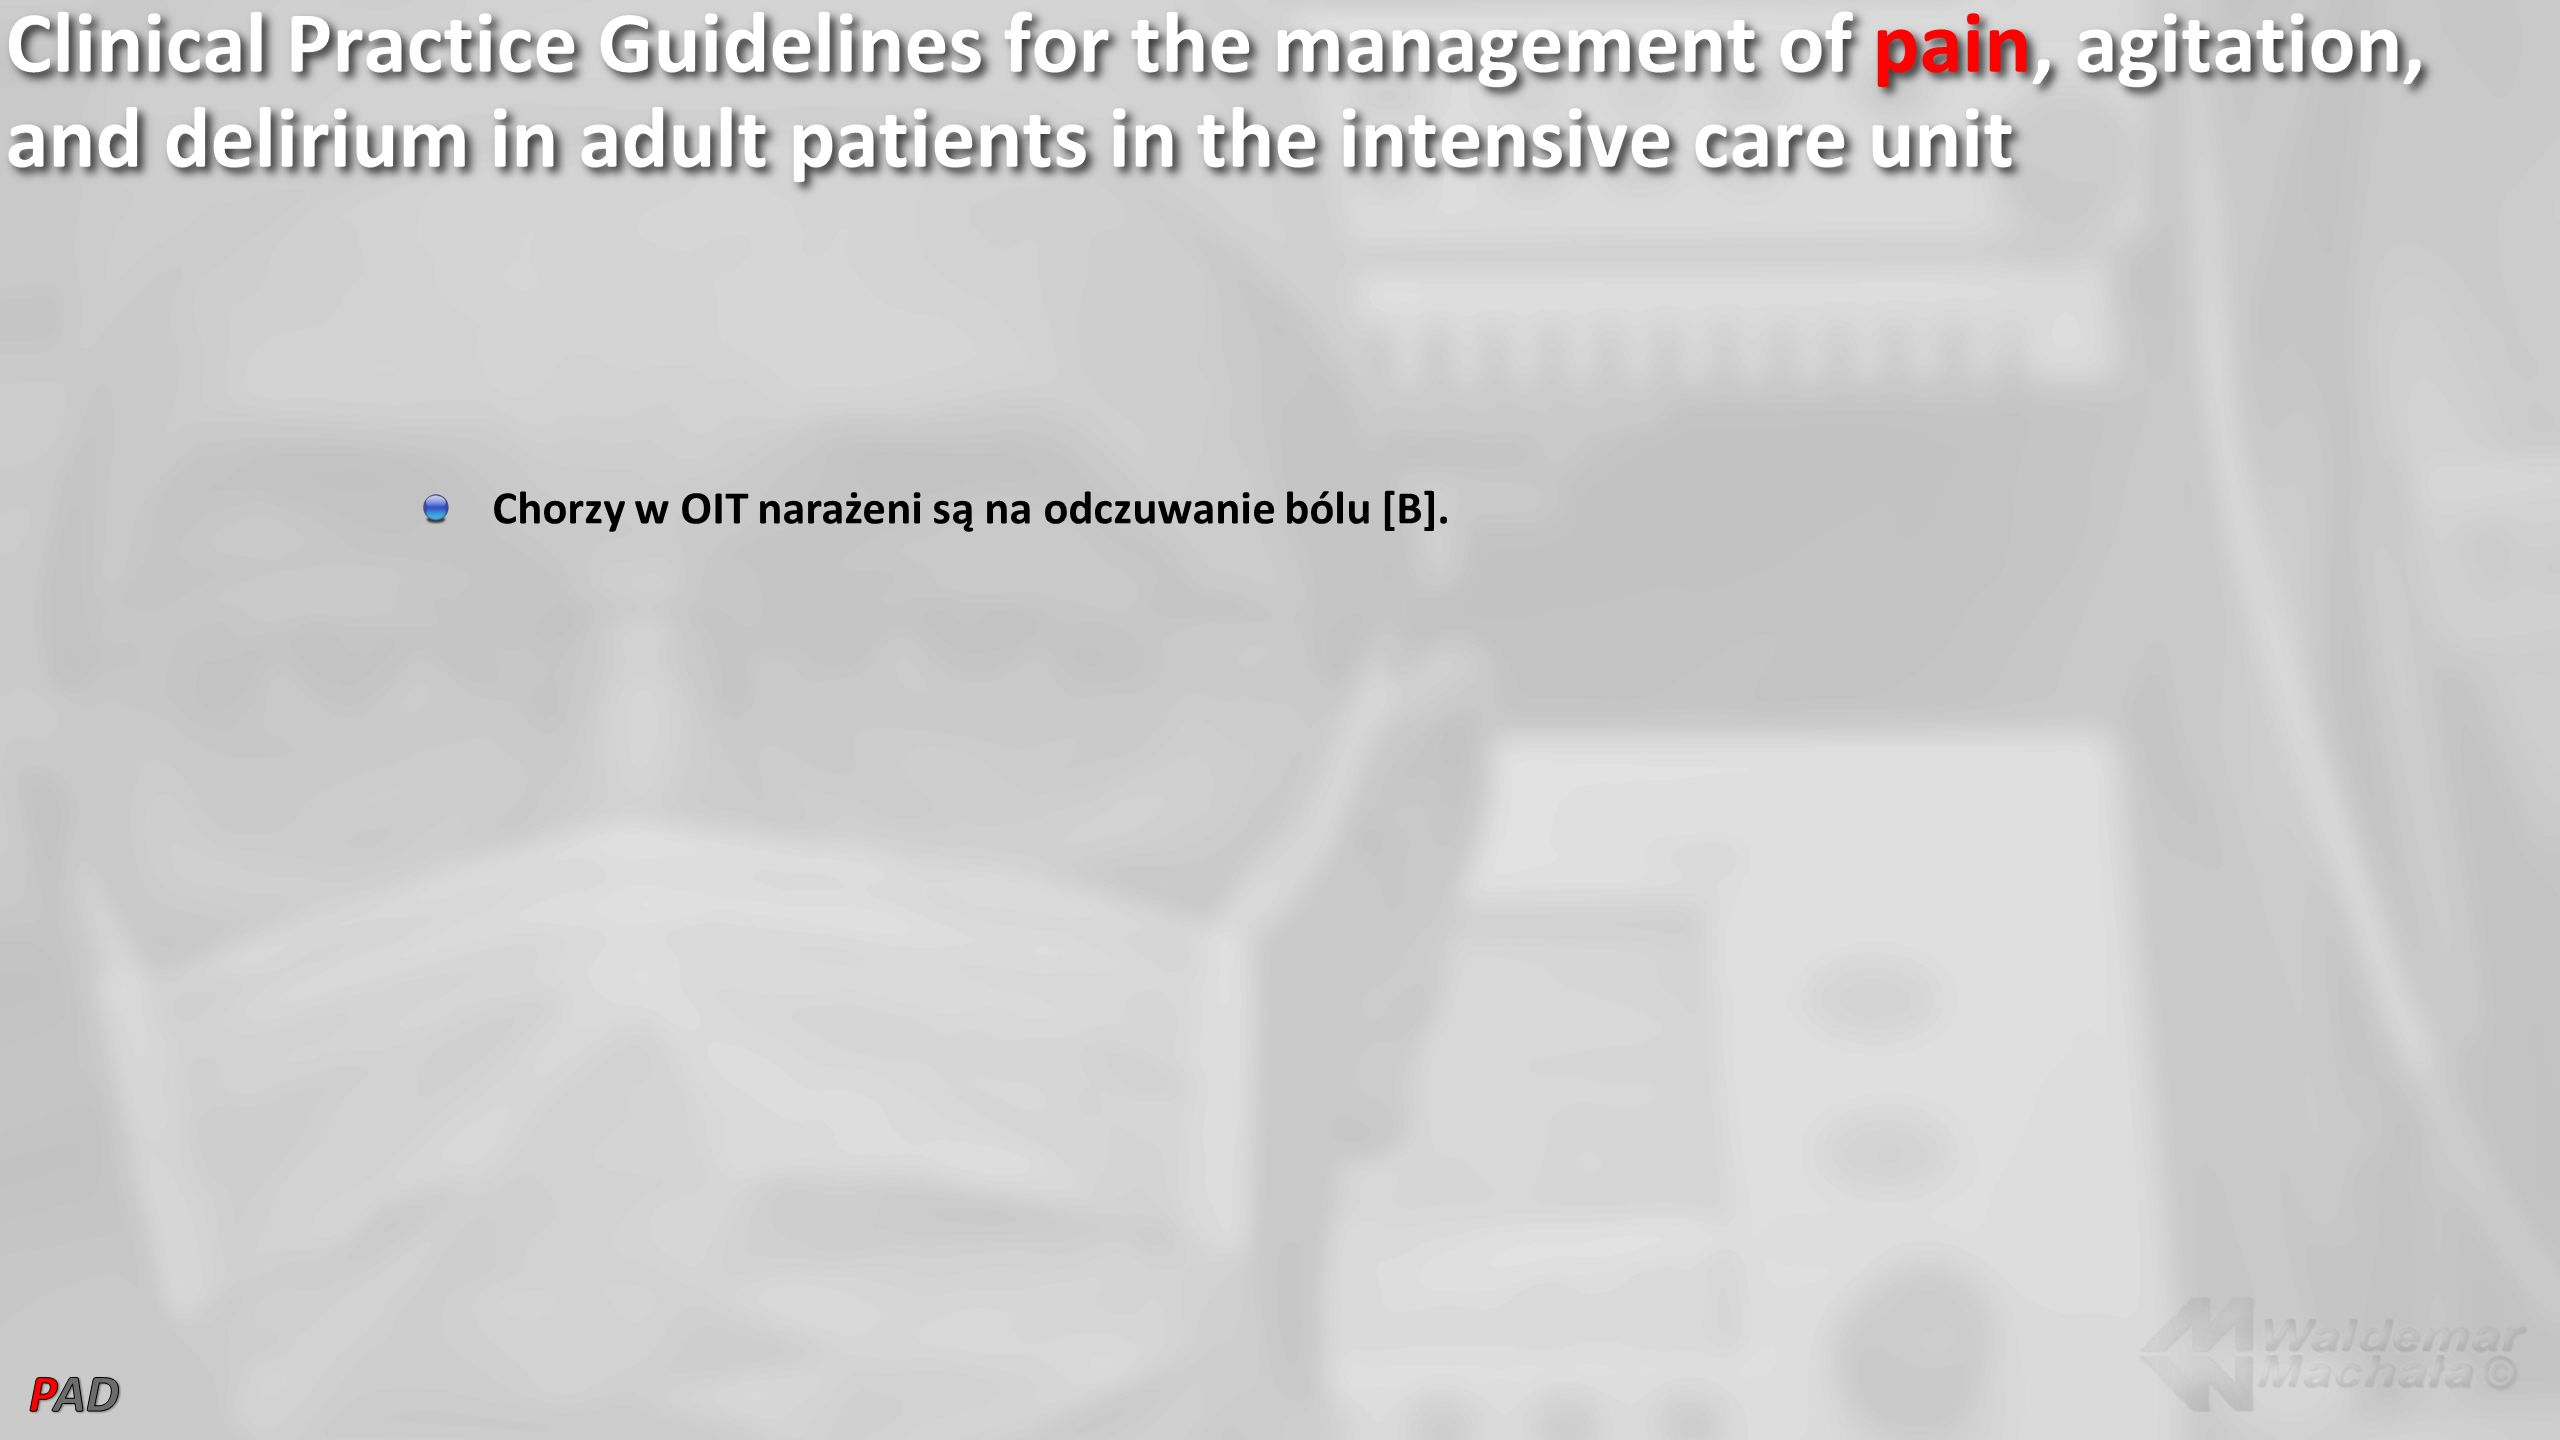 Clinical Practice Guidelines for the management of pain, agitation, and delirium in adult patients in the intensive care unit